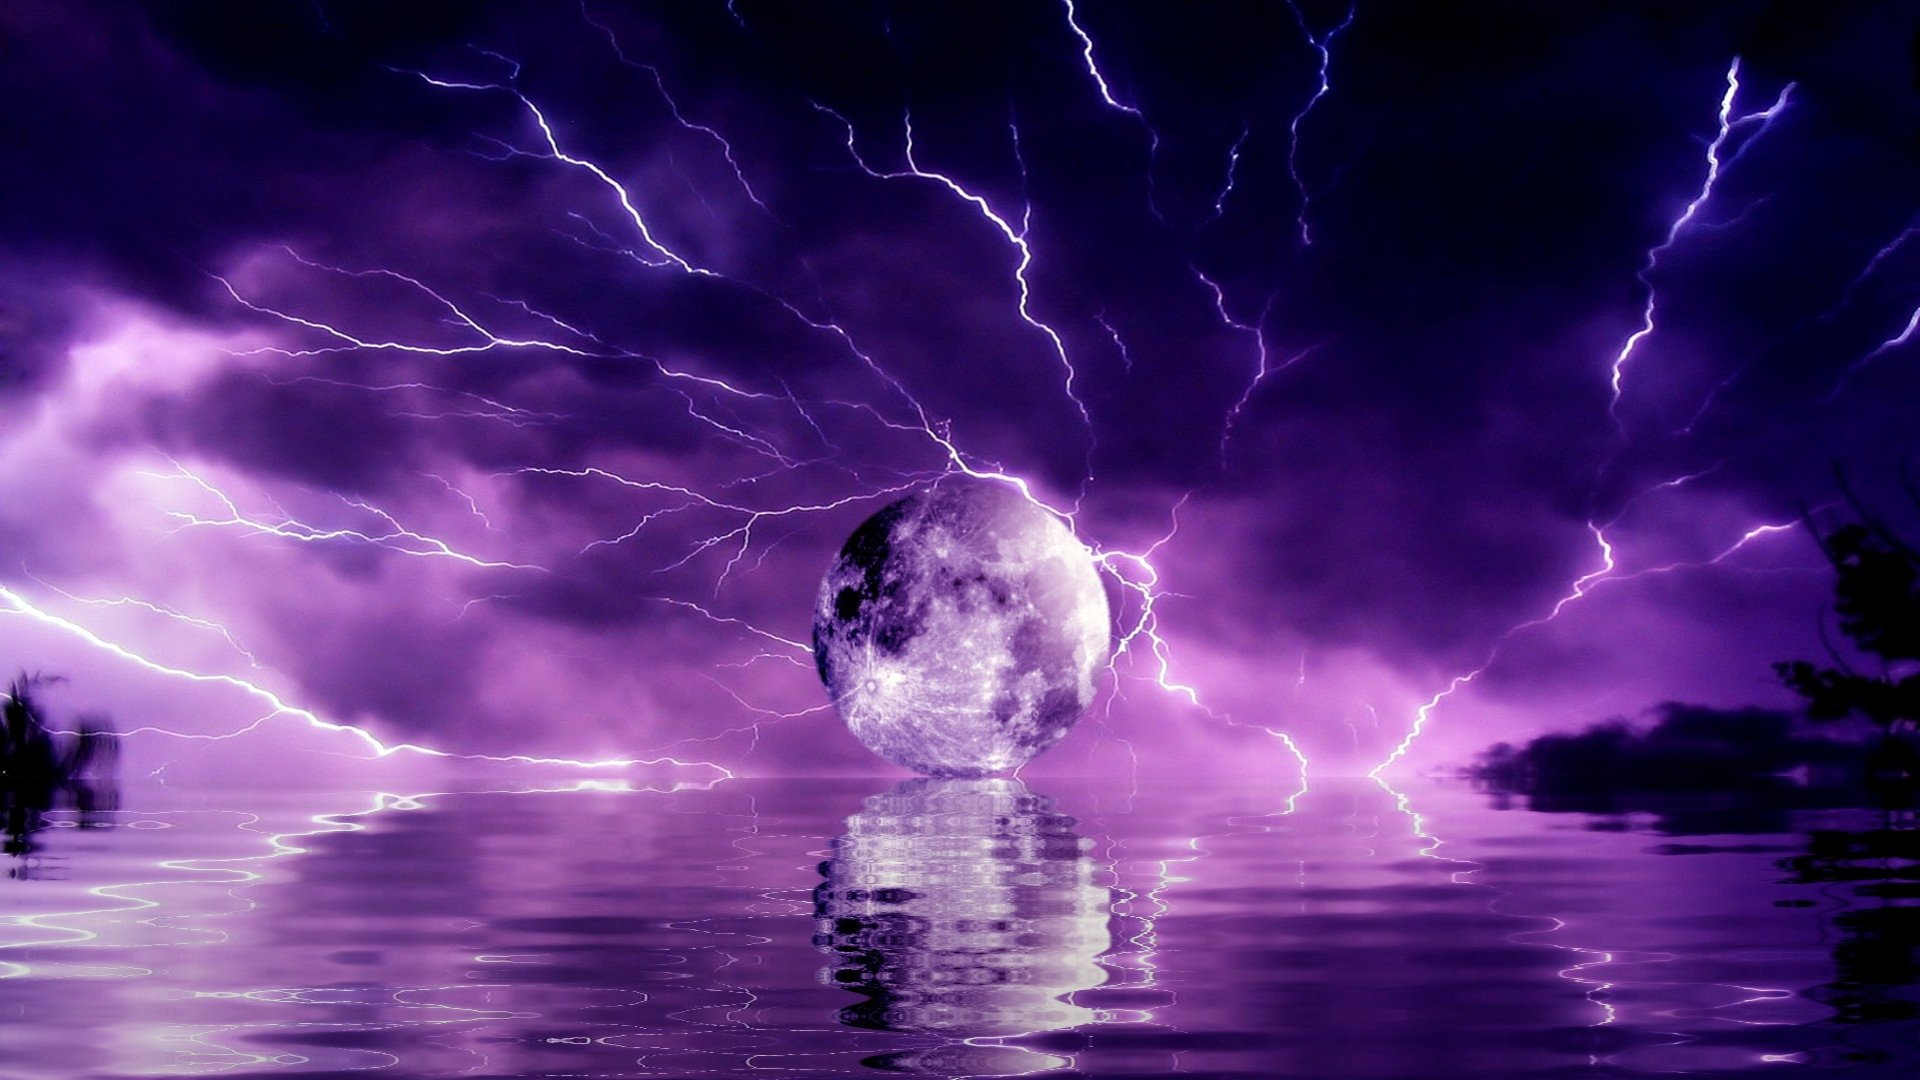 Hd Thunderstorm Wallpapers: Thunderstorm Screensavers Wallpapers